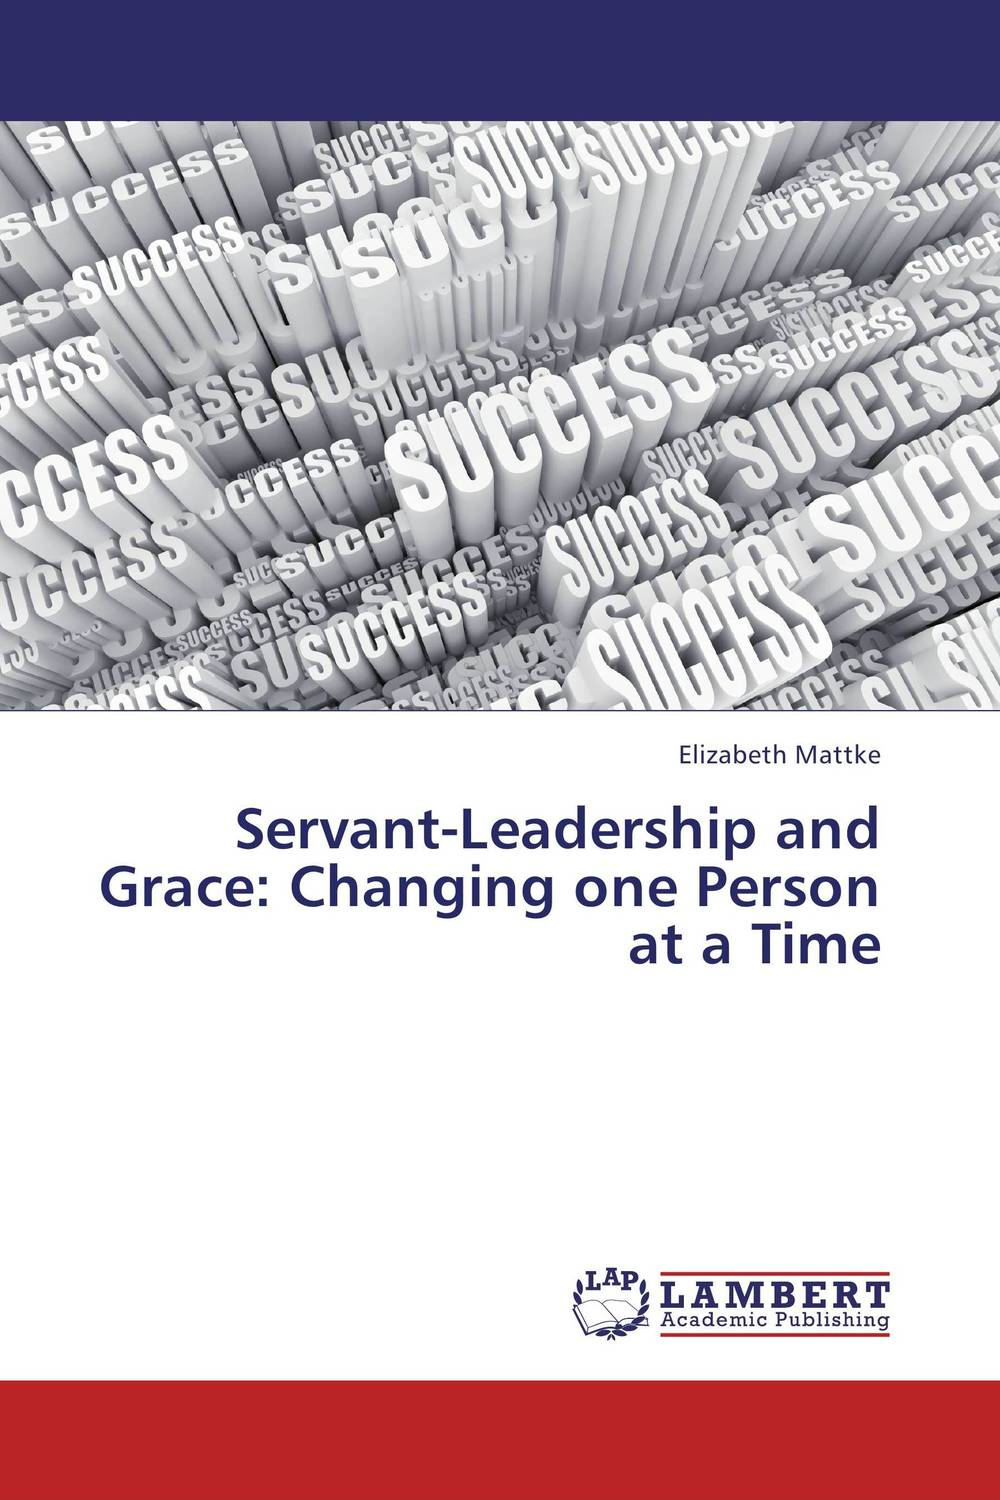 Servant-Leadership and Grace:  Changing one Person at a Time in one person